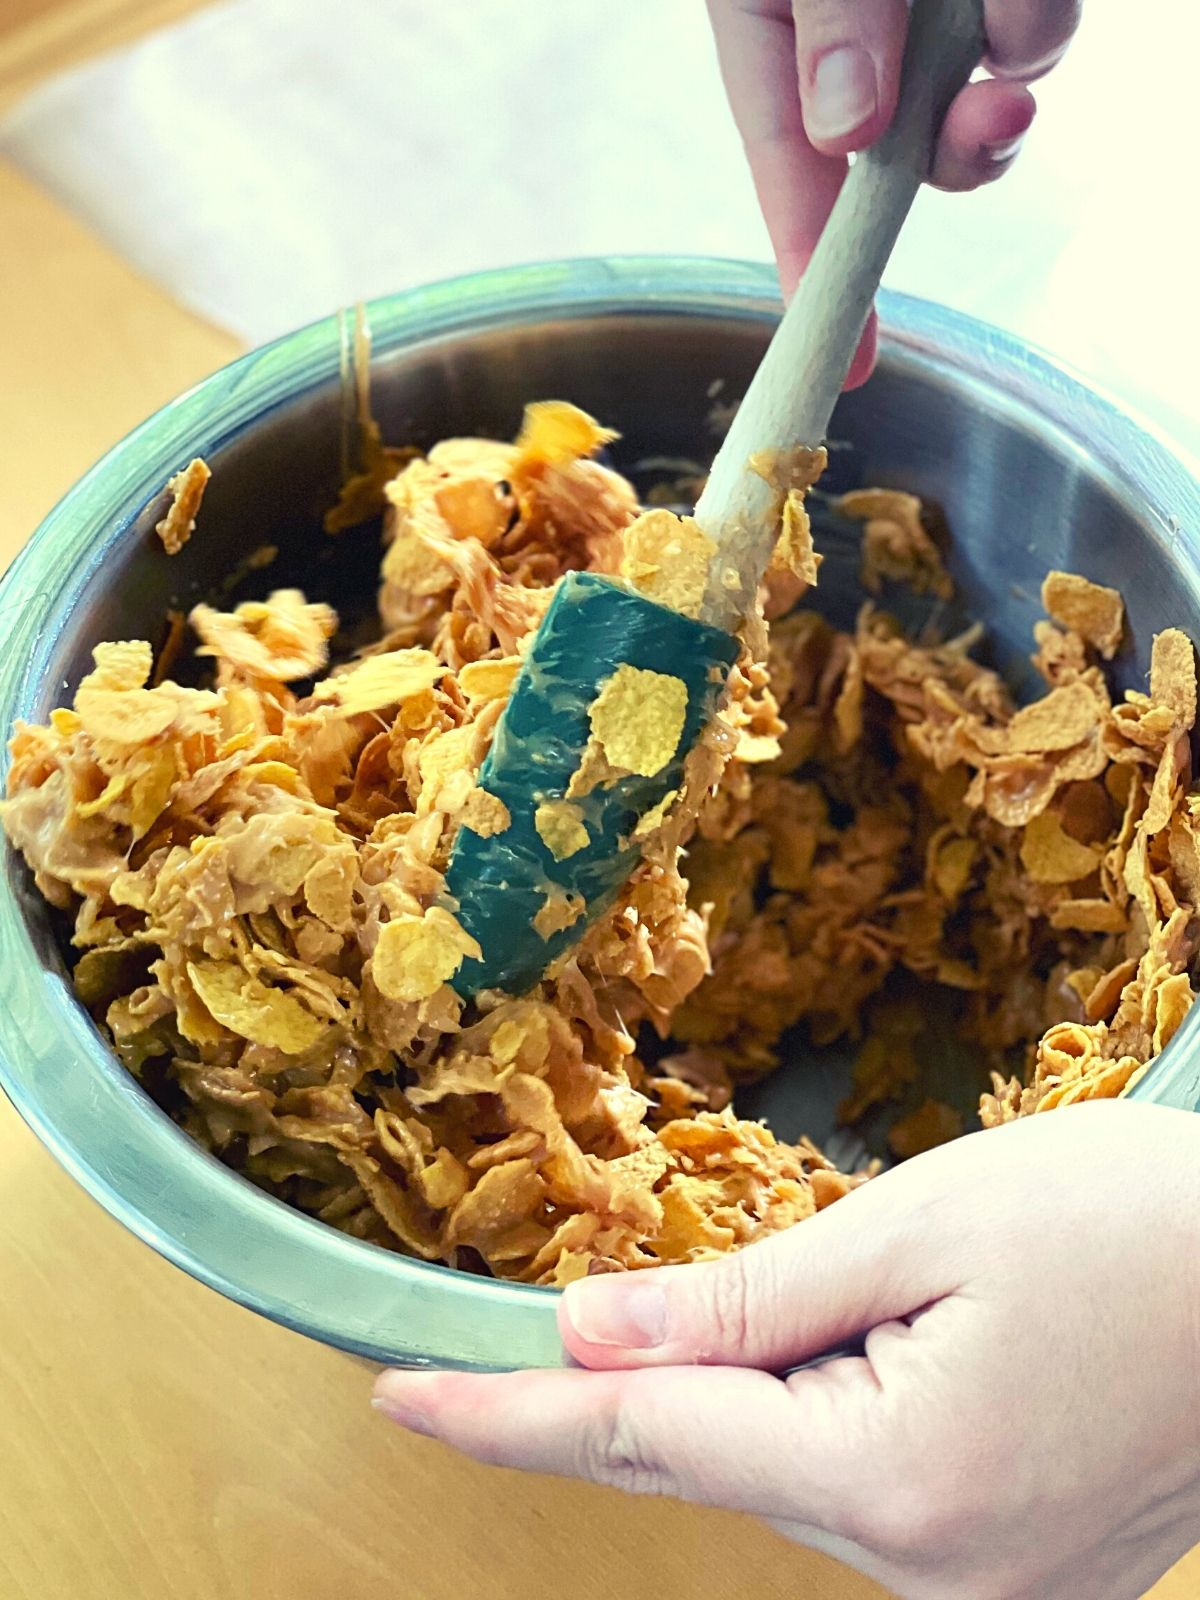 Using a green spatula to mix the peanut butter mixture into the cornflakes in the large mixing bowl.